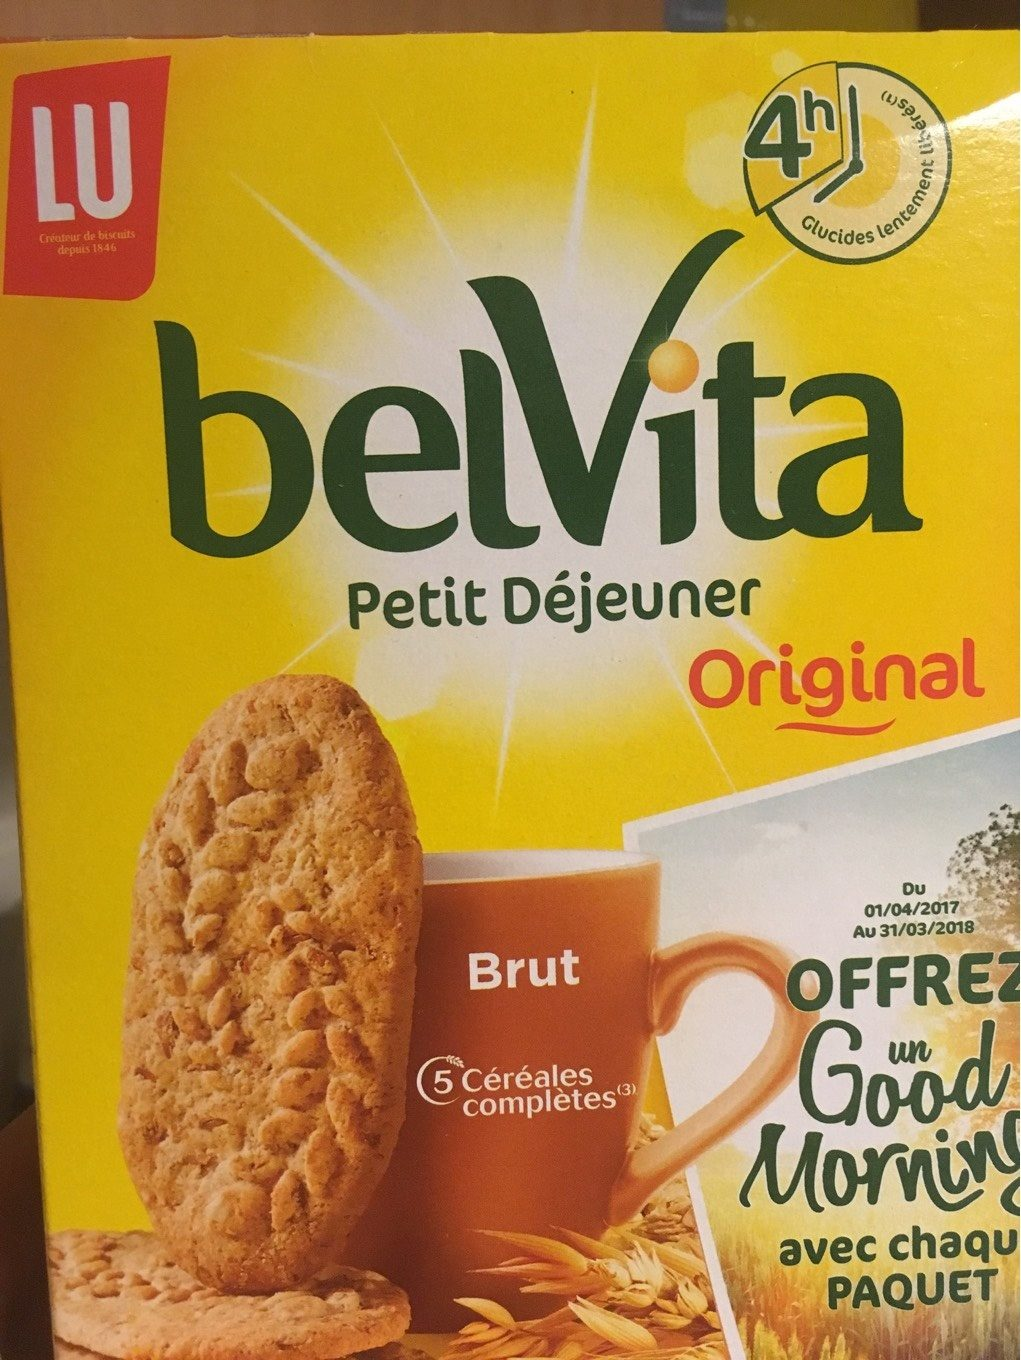 belvita petit dejeuner brut cereales lu 400 g e. Black Bedroom Furniture Sets. Home Design Ideas